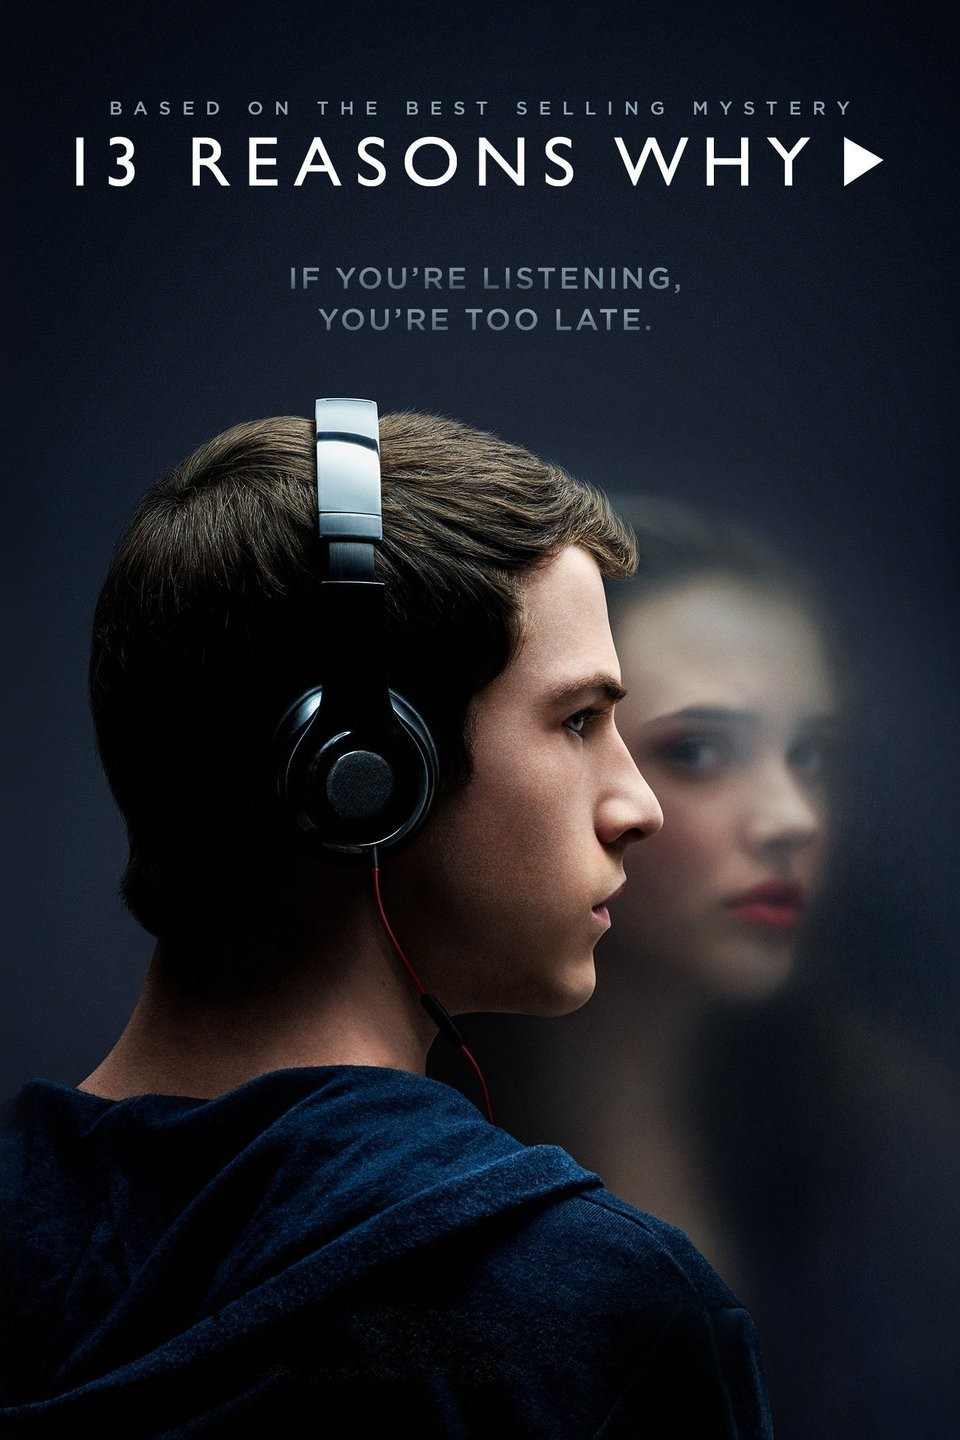 13 reasons why epub